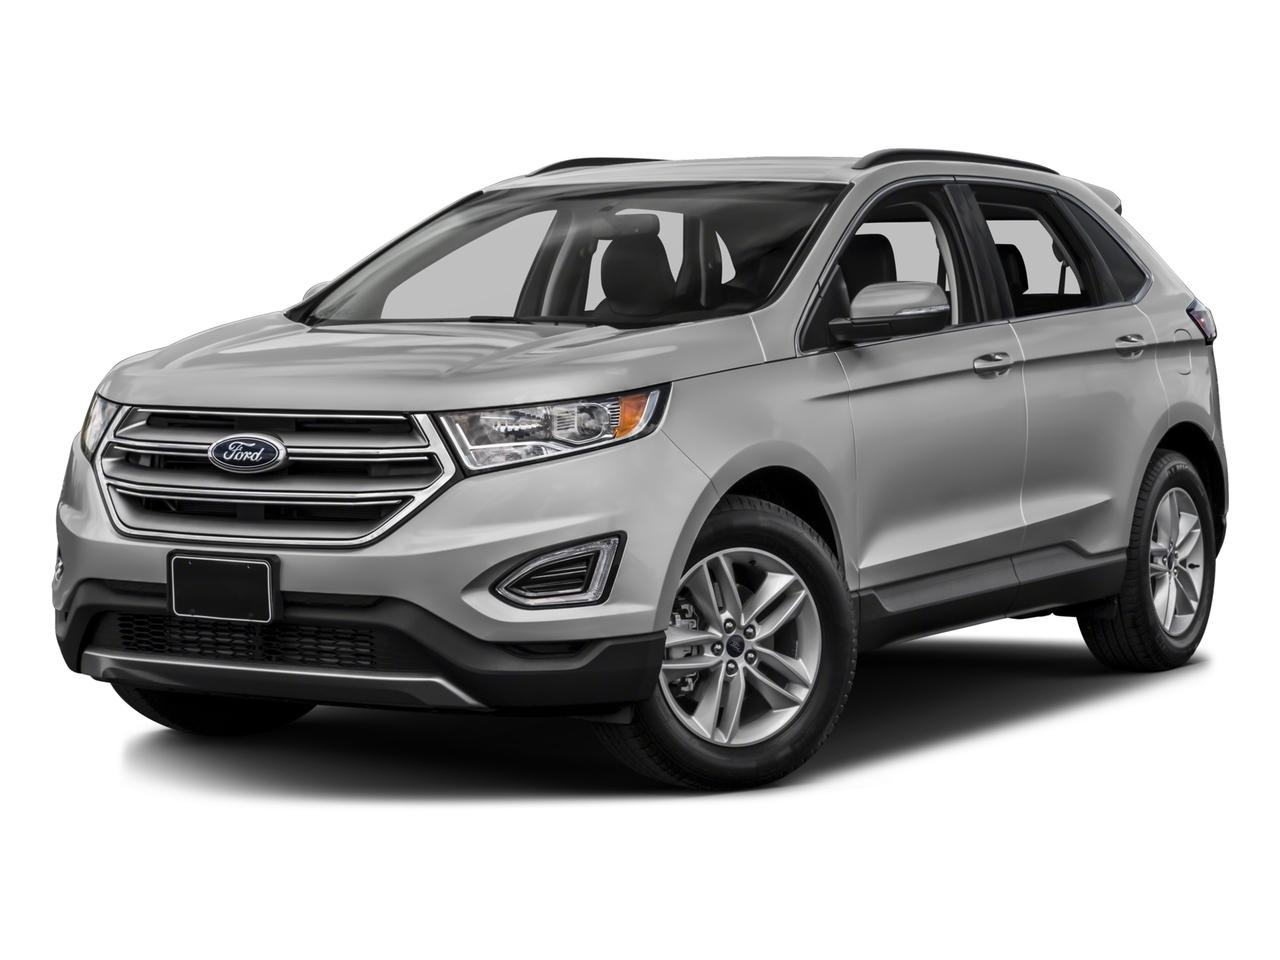 2017 Ford Edge Vehicle Photo in OKLAHOMA CITY, OK 73131